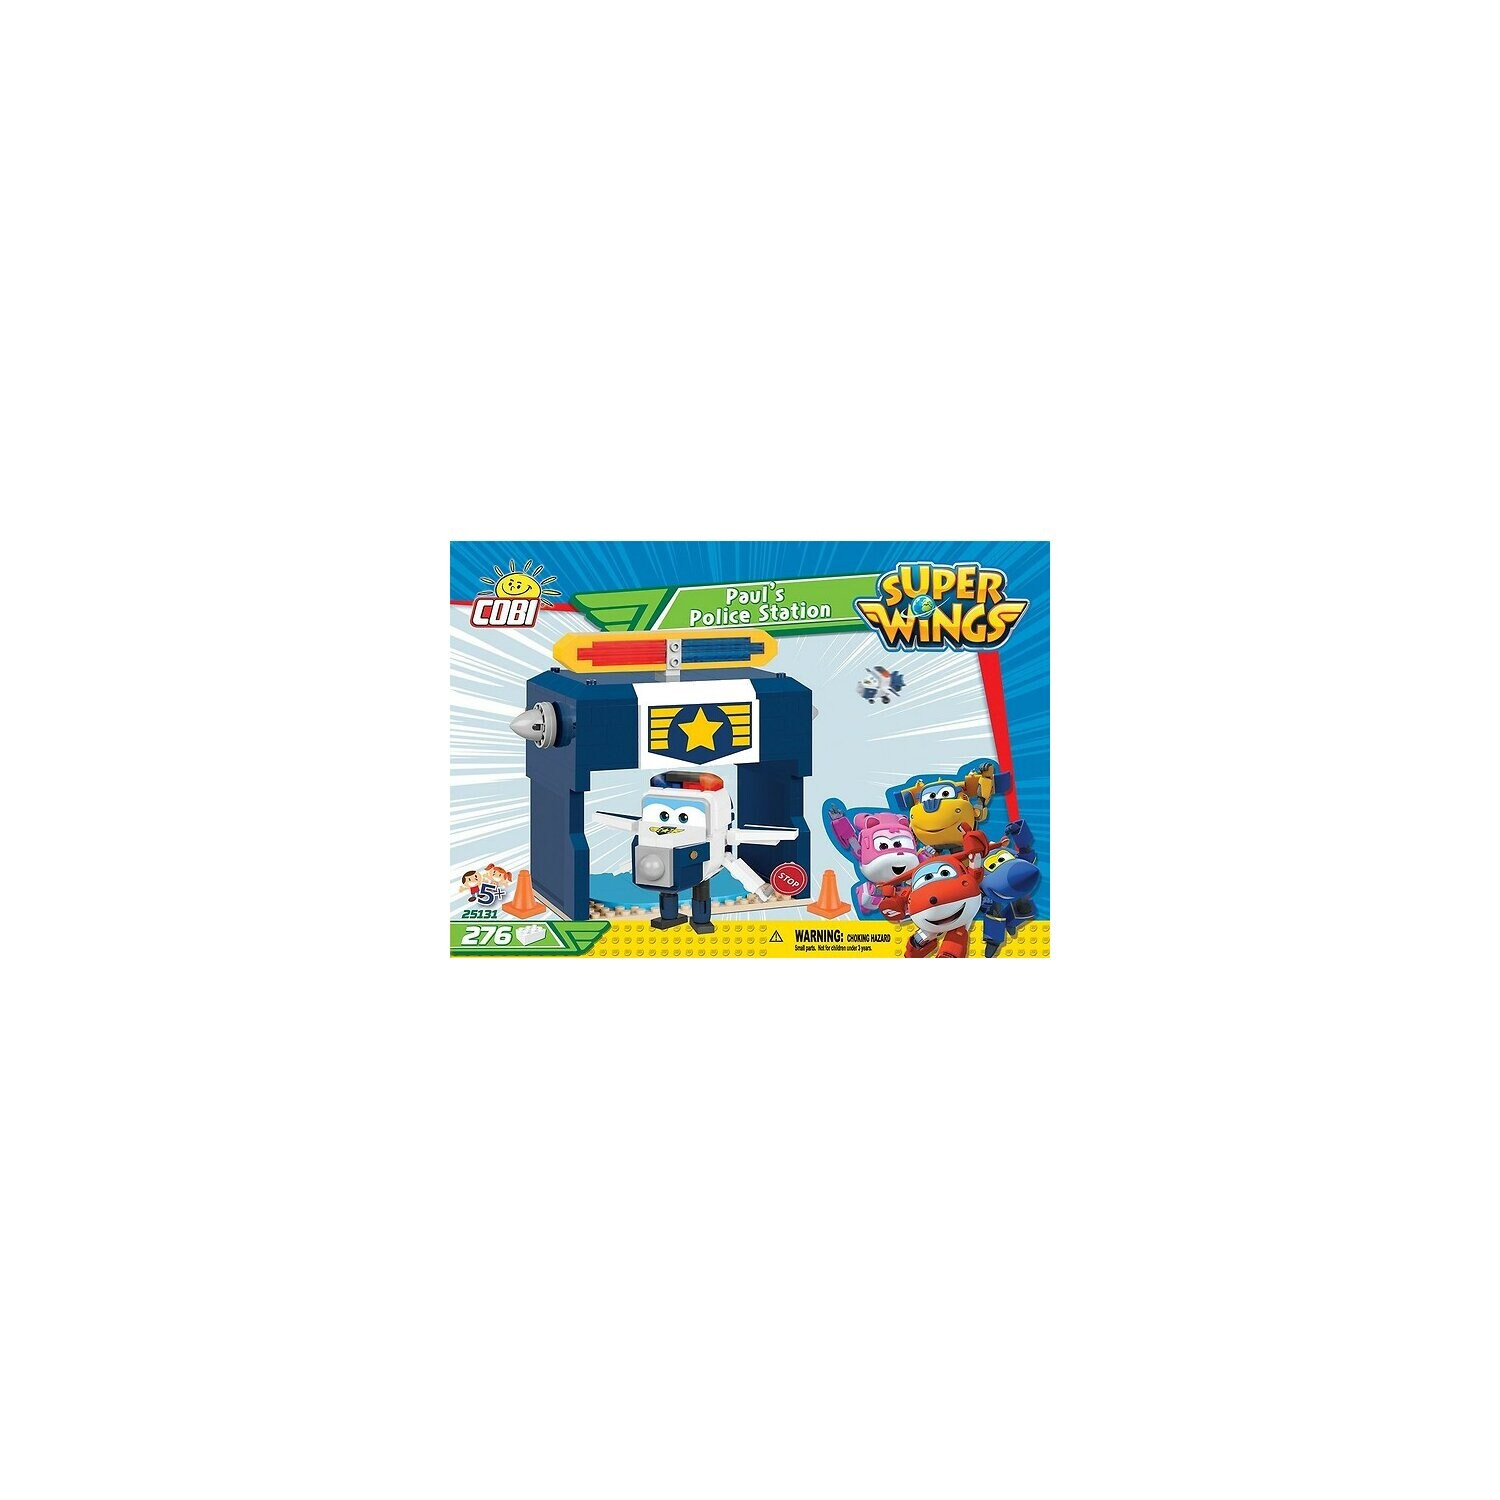 Klocki COBI Super Wings - Pauls Police Station (25131)